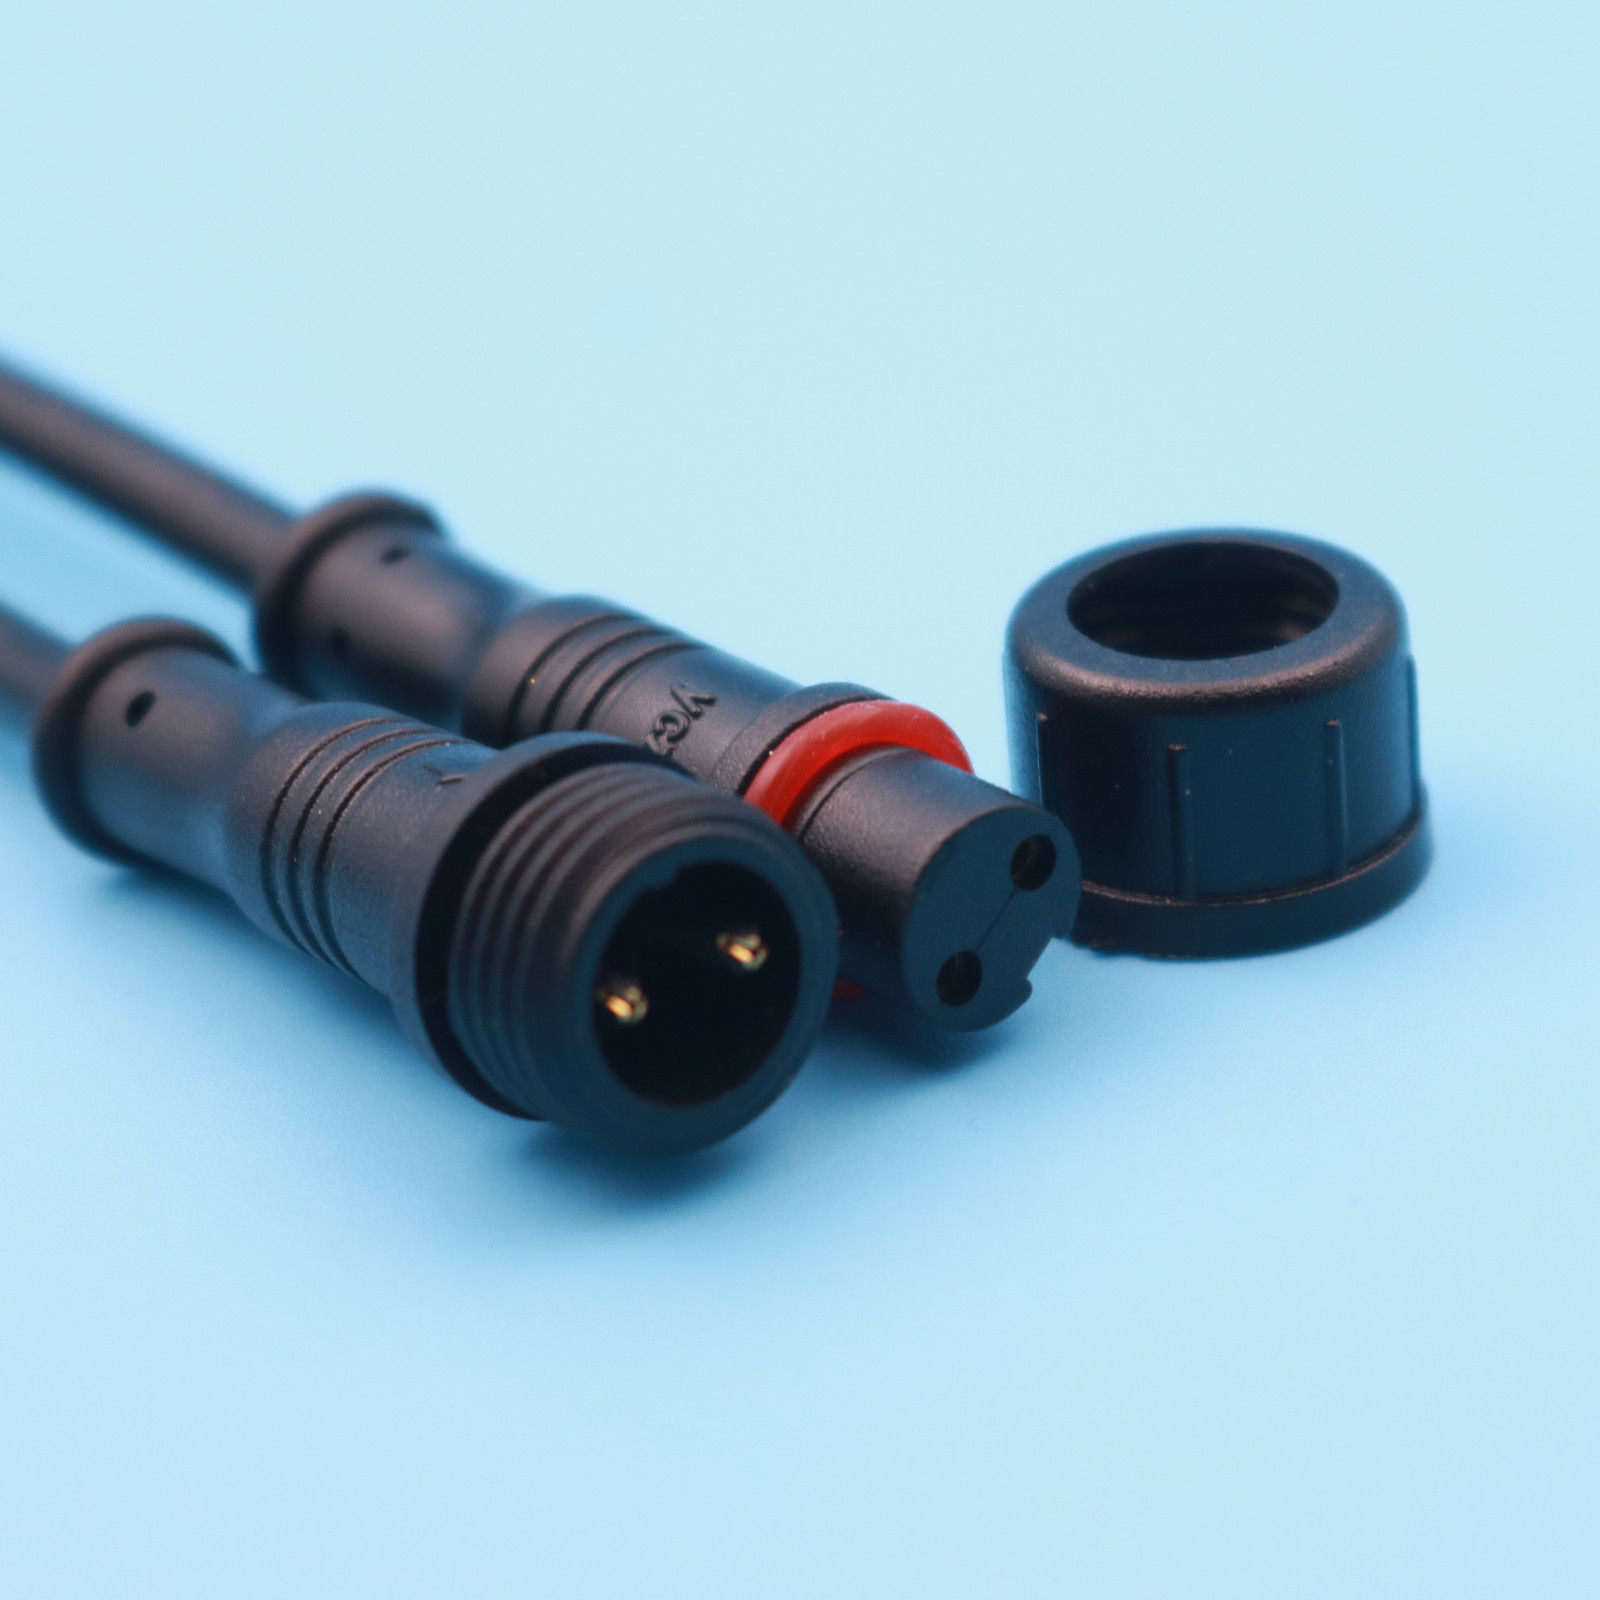 10pcs IP65 Waterproof Connector 0.3mm Male And Female Black Cable Connector Plug & Socket 22AWG 500V 2 Pin